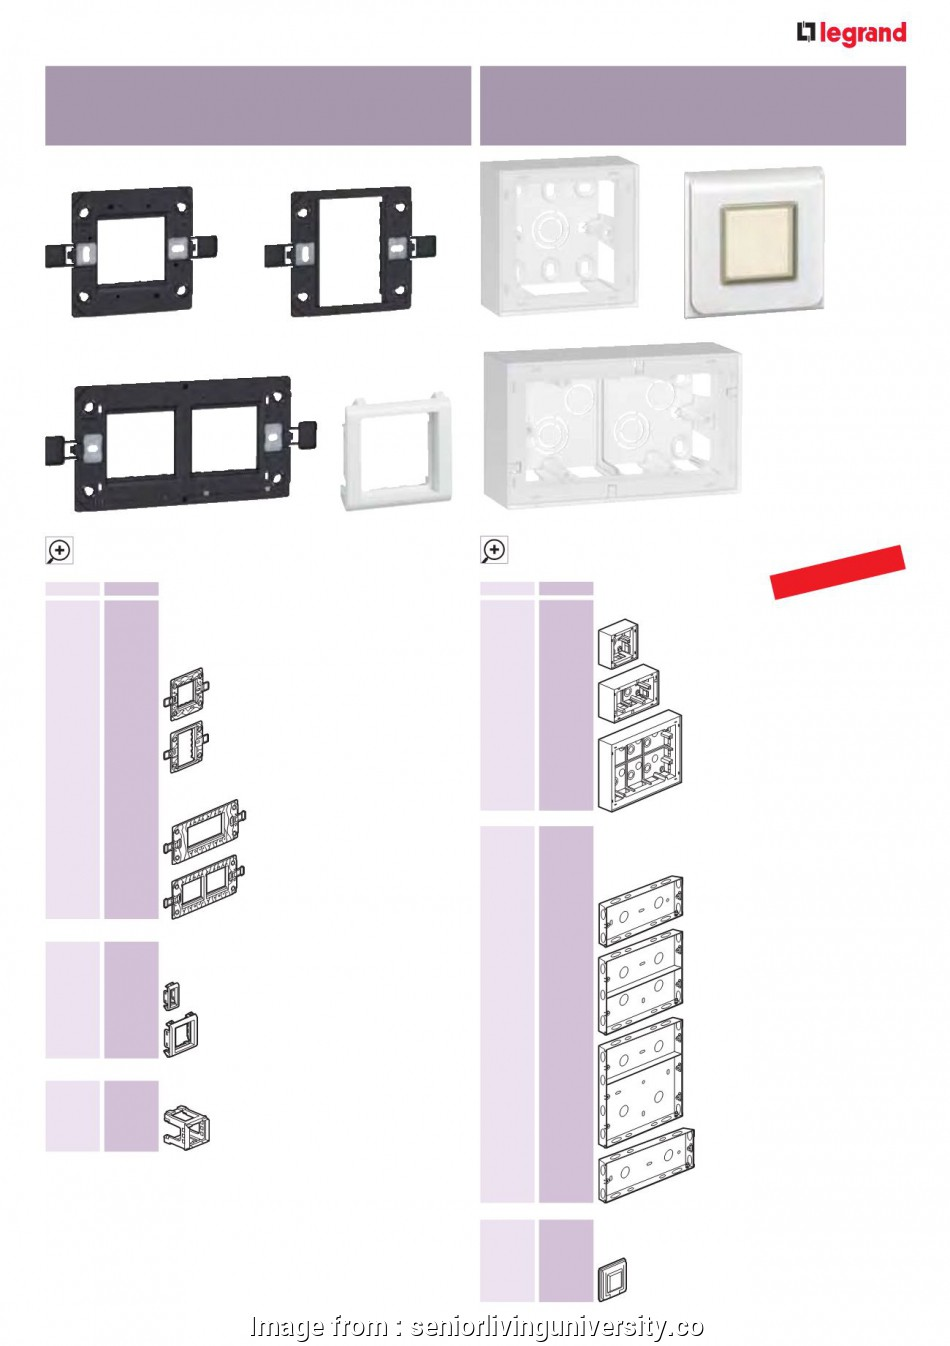 legrand light switch wiring diagram arteor wiring devices home automation systems rh storage electrika, 3-Way Switch Wiring Diagram Light Switch Wiring Diagram Legrand Light Switch Wiring Diagram Cleaver Arteor Wiring Devices Home Automation Systems Rh Storage Electrika, 3-Way Switch Wiring Diagram Light Switch Wiring Diagram Images